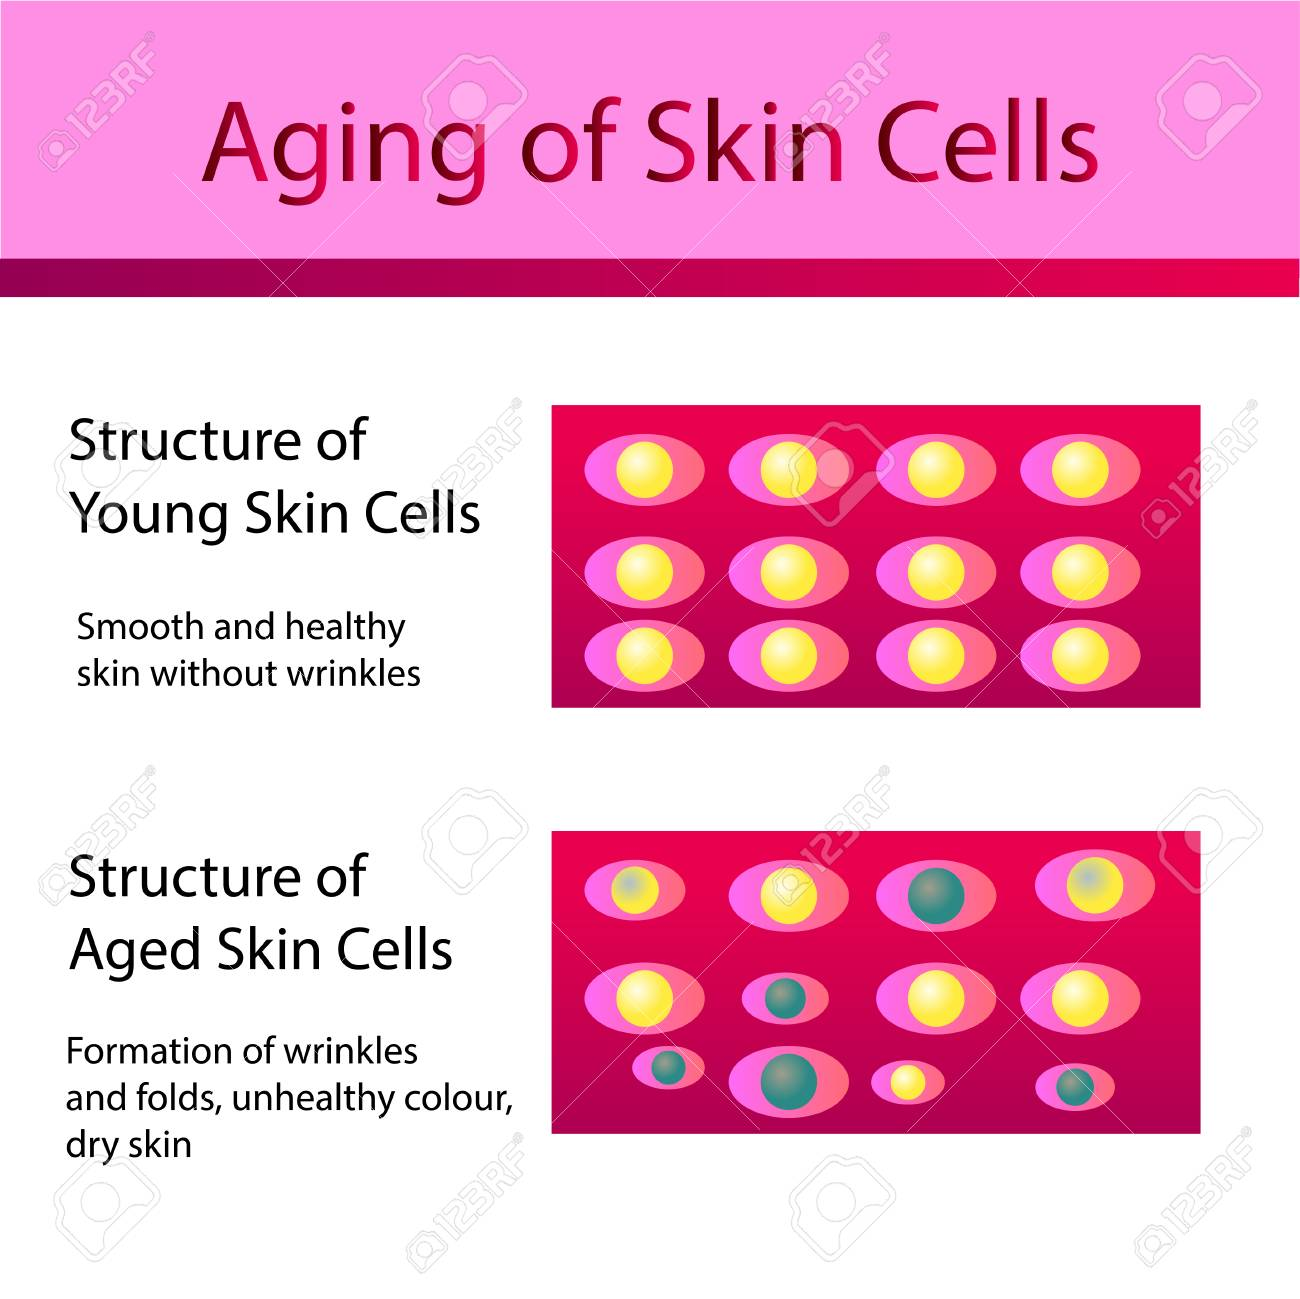 what are the two types of cells